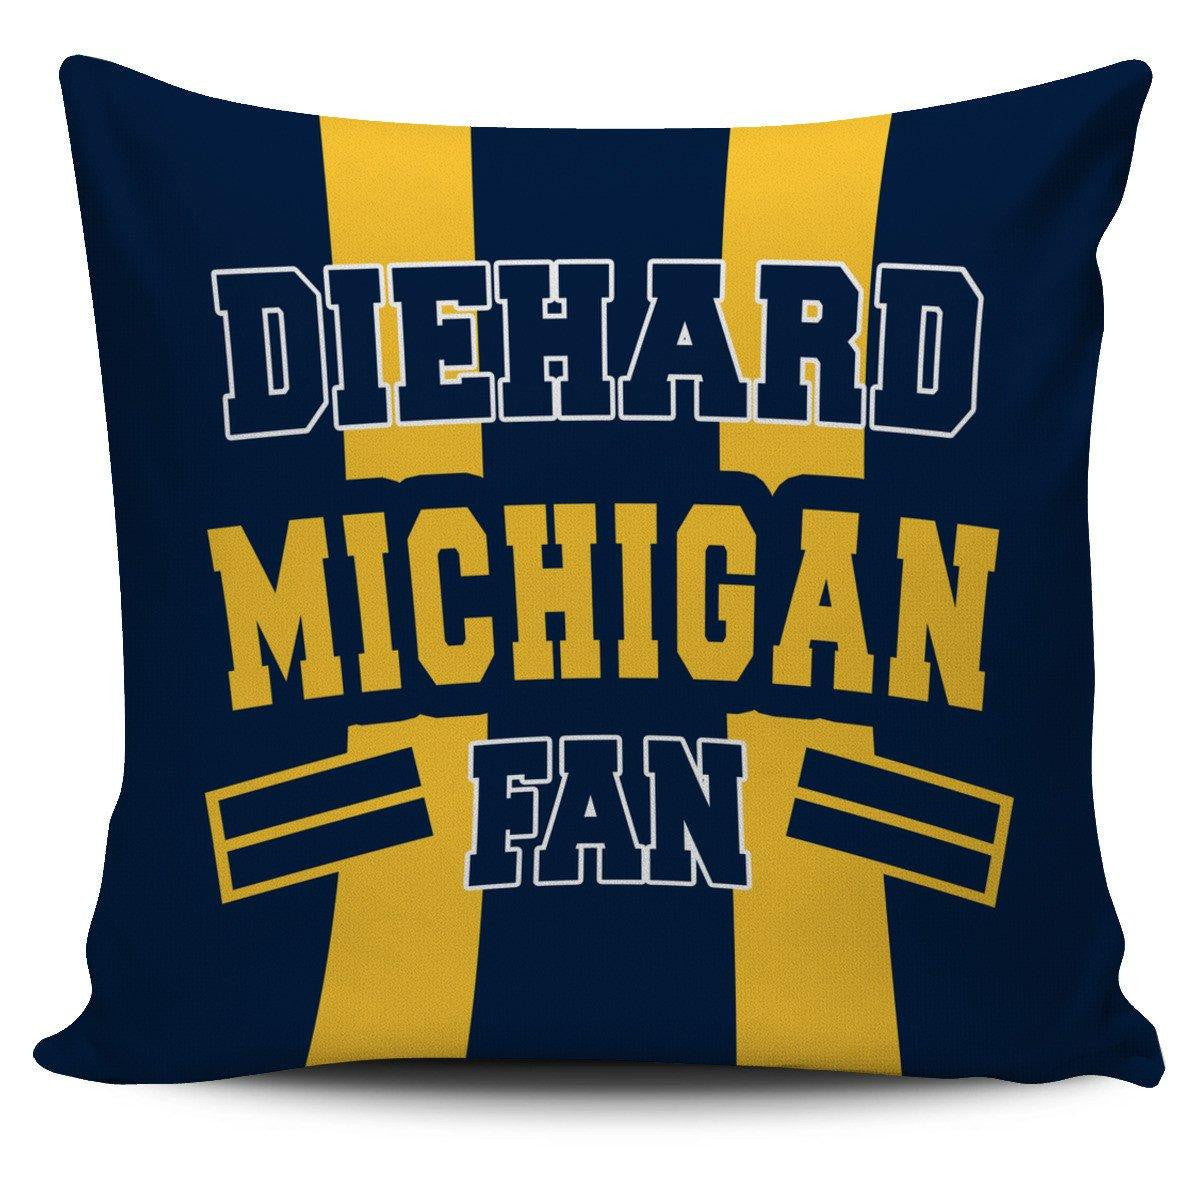 Michigan Collector Pillowcase